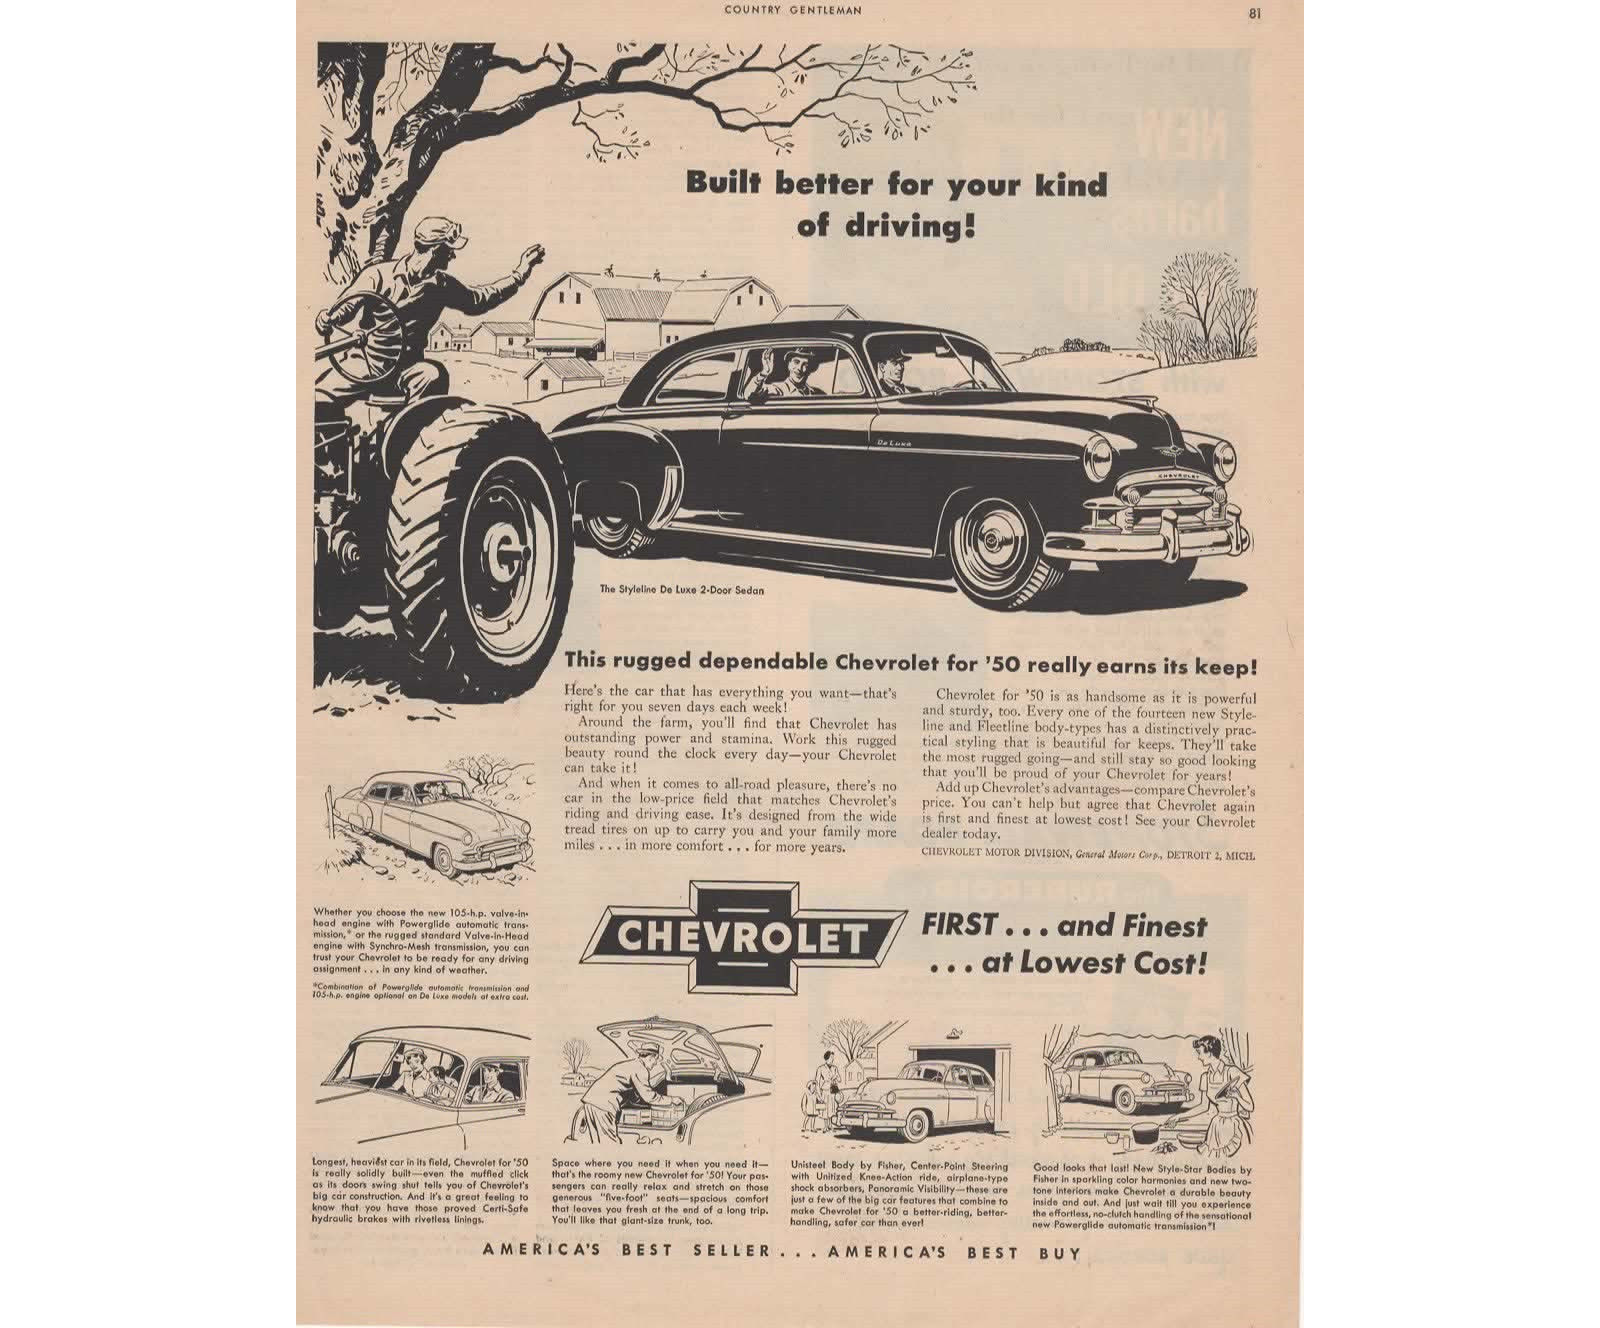 1950 Chevy Styleline De Luxe Ad, by SandyCreekCollectables on Zibbet